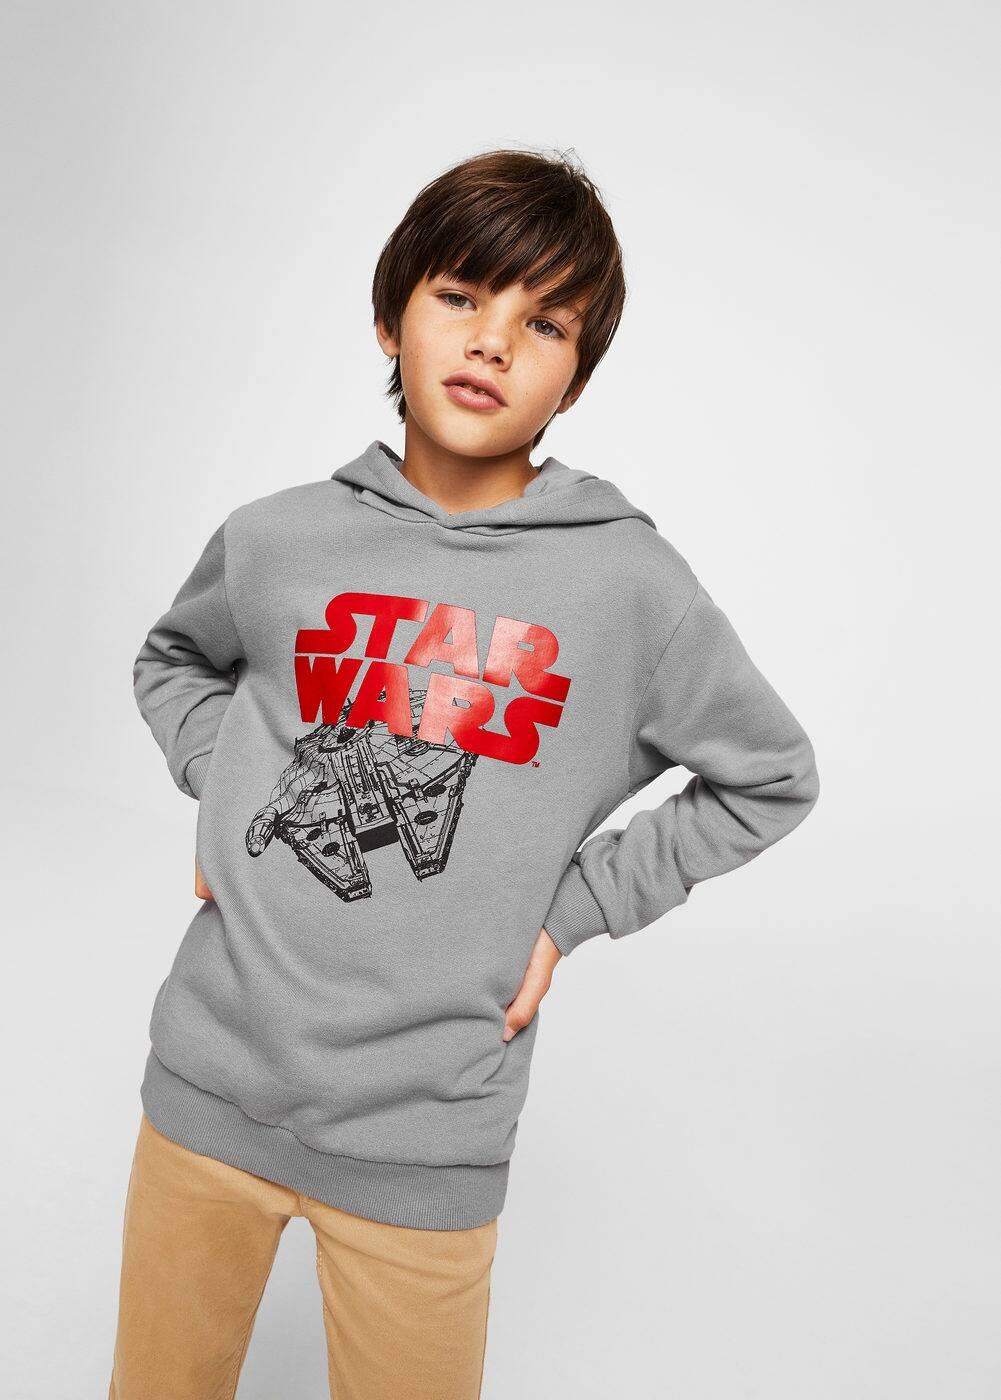 Star wars sweatshirt | MANGO